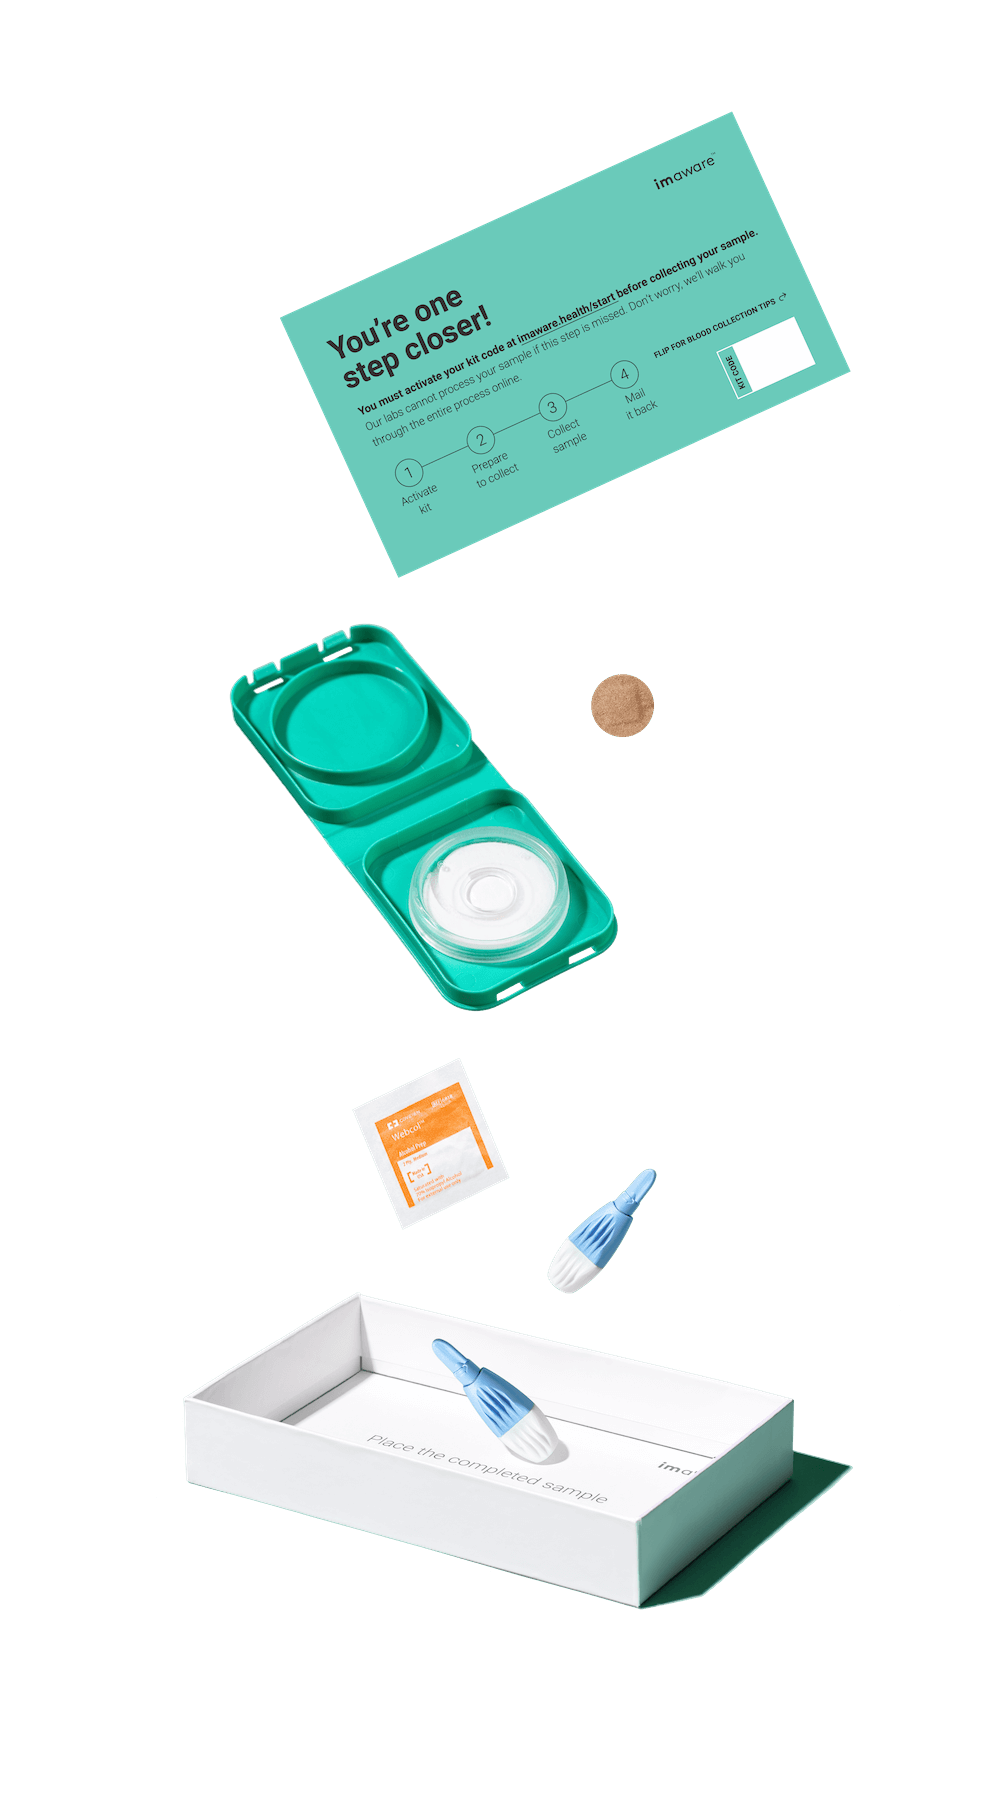 Kit components